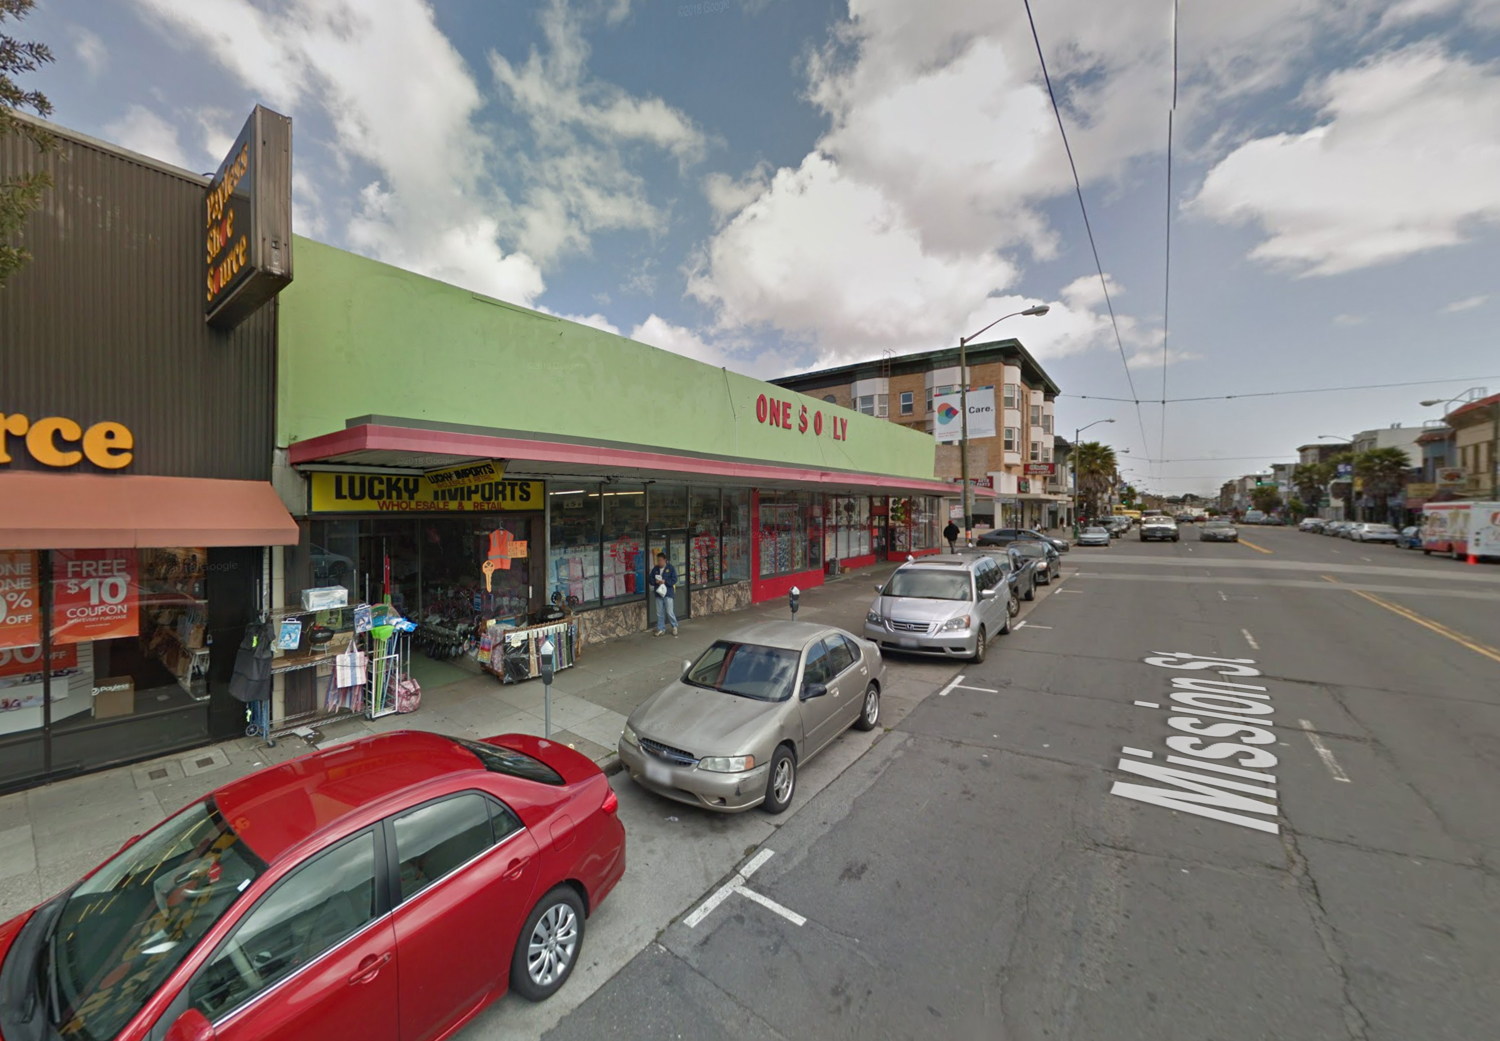 4550 Mission Street, image from Google Street View